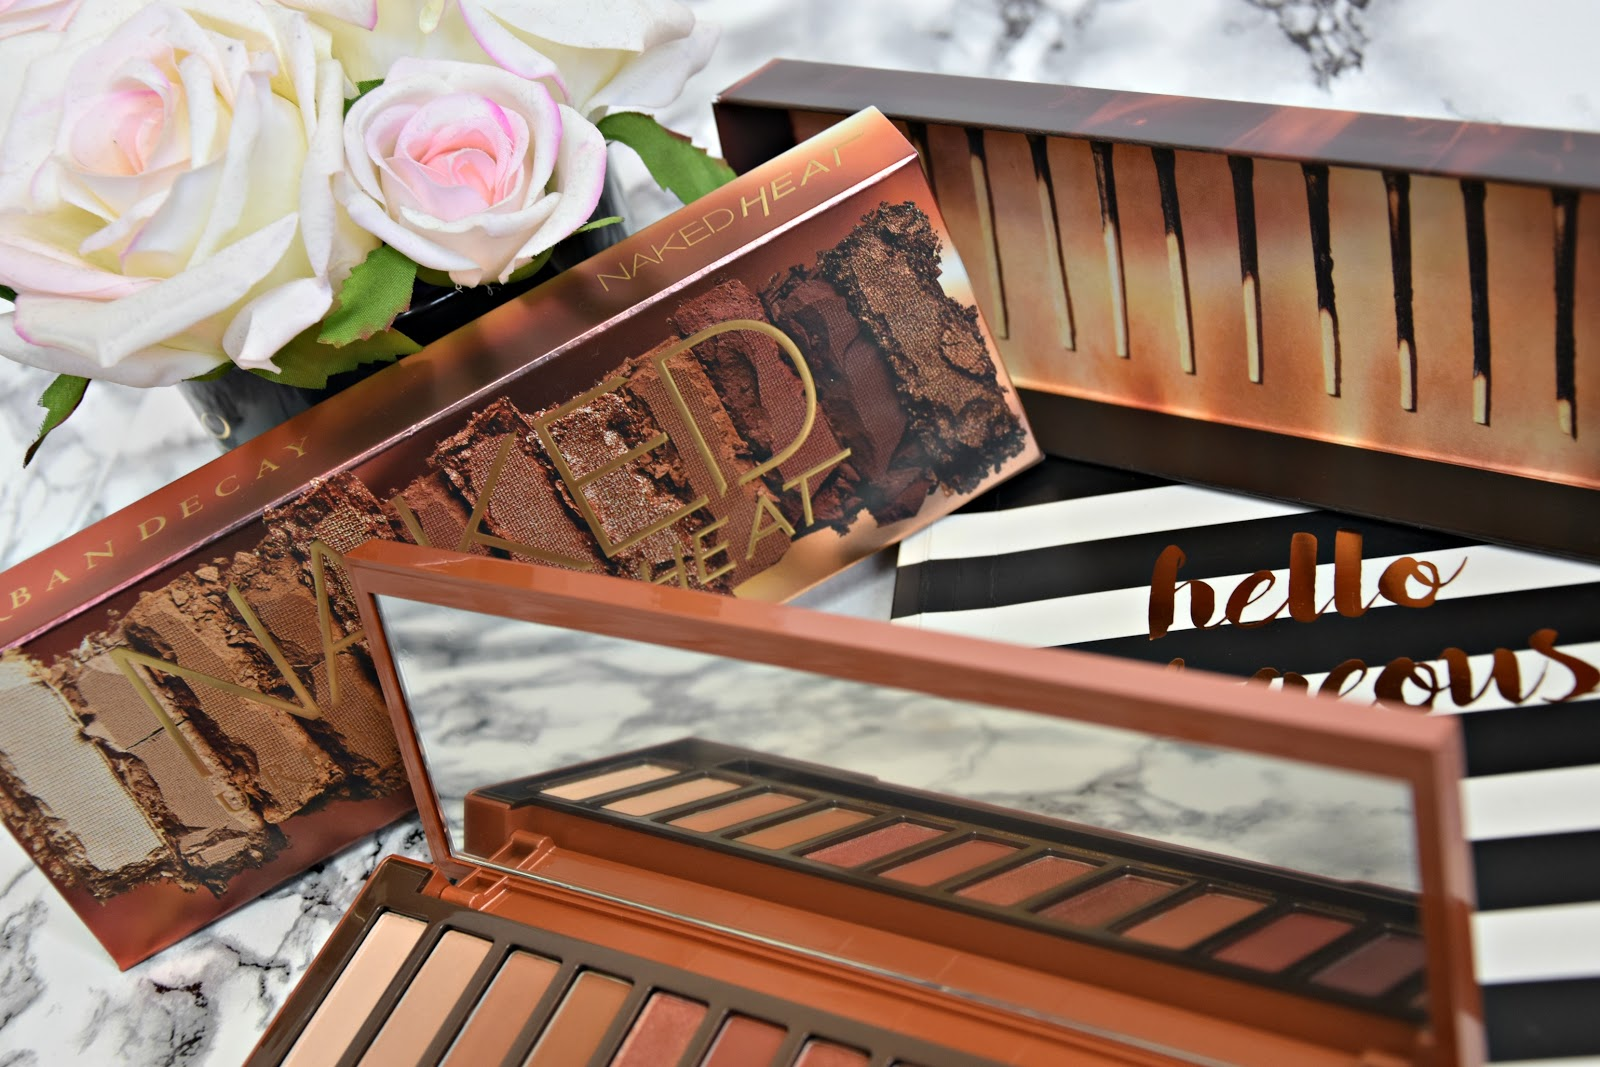 Urban Decay Naked Heat Eyeshadow Palette Review